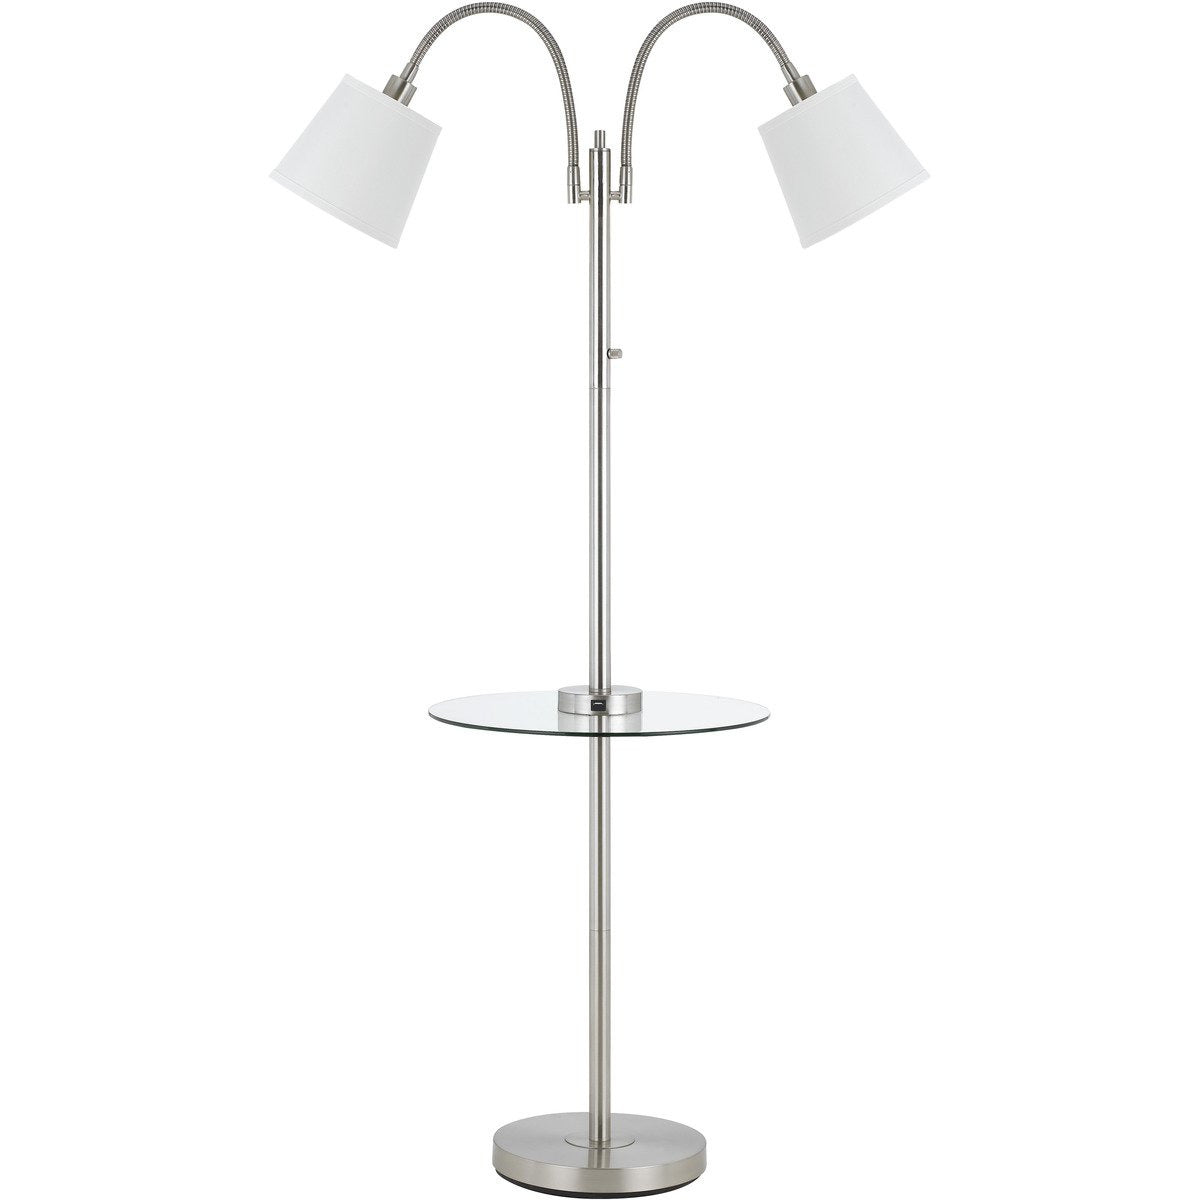 Floor Lamps - Metal Floor Lamp With 2 Gooseneck Design Shade And 3 Way Switch, Silver